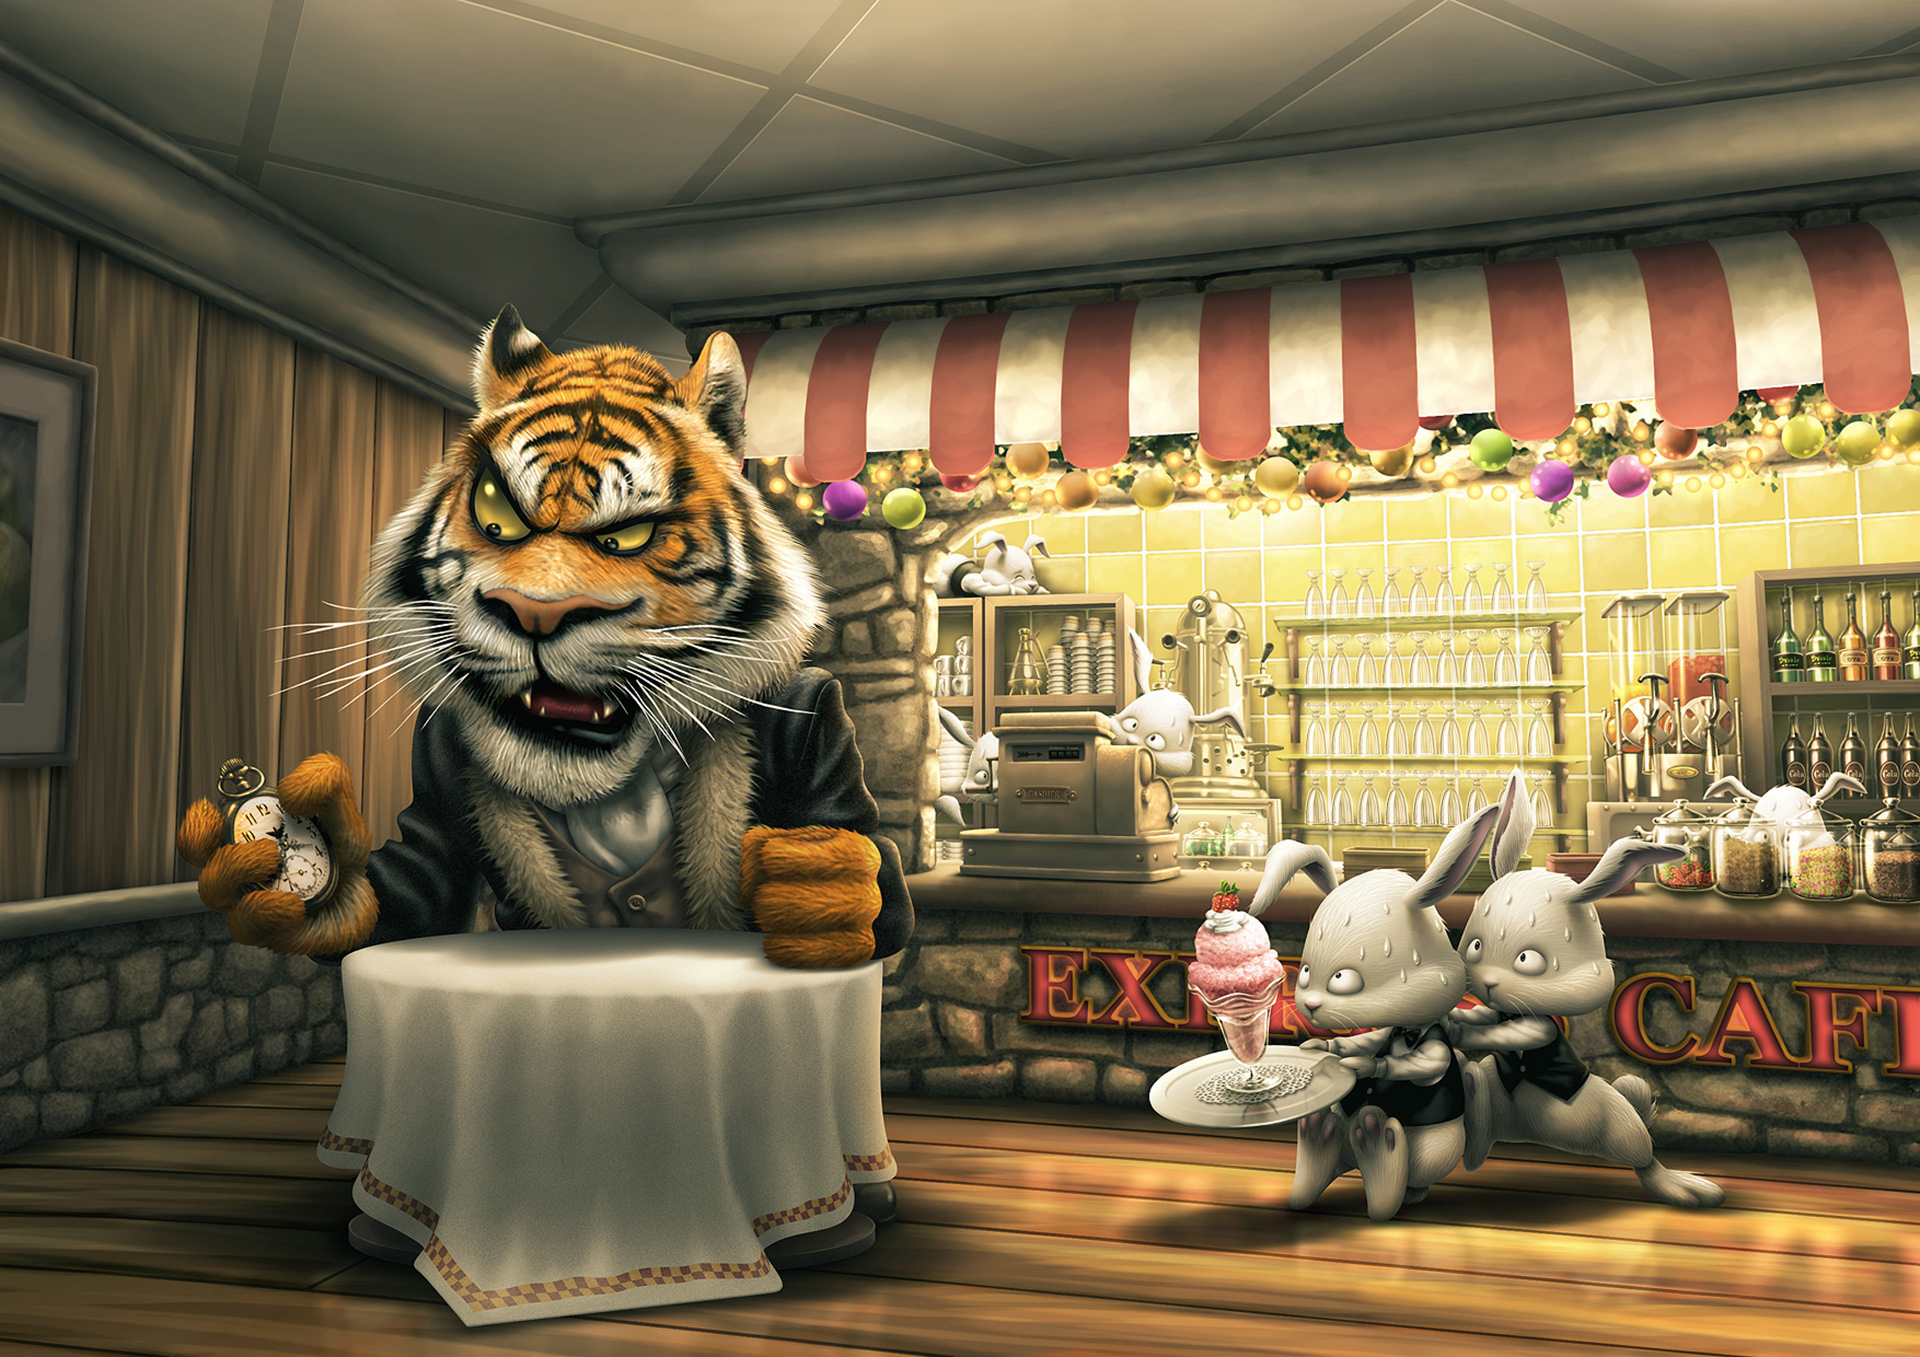 Impatient Tiger Served By Rabbits Wallpaper 1920x1357